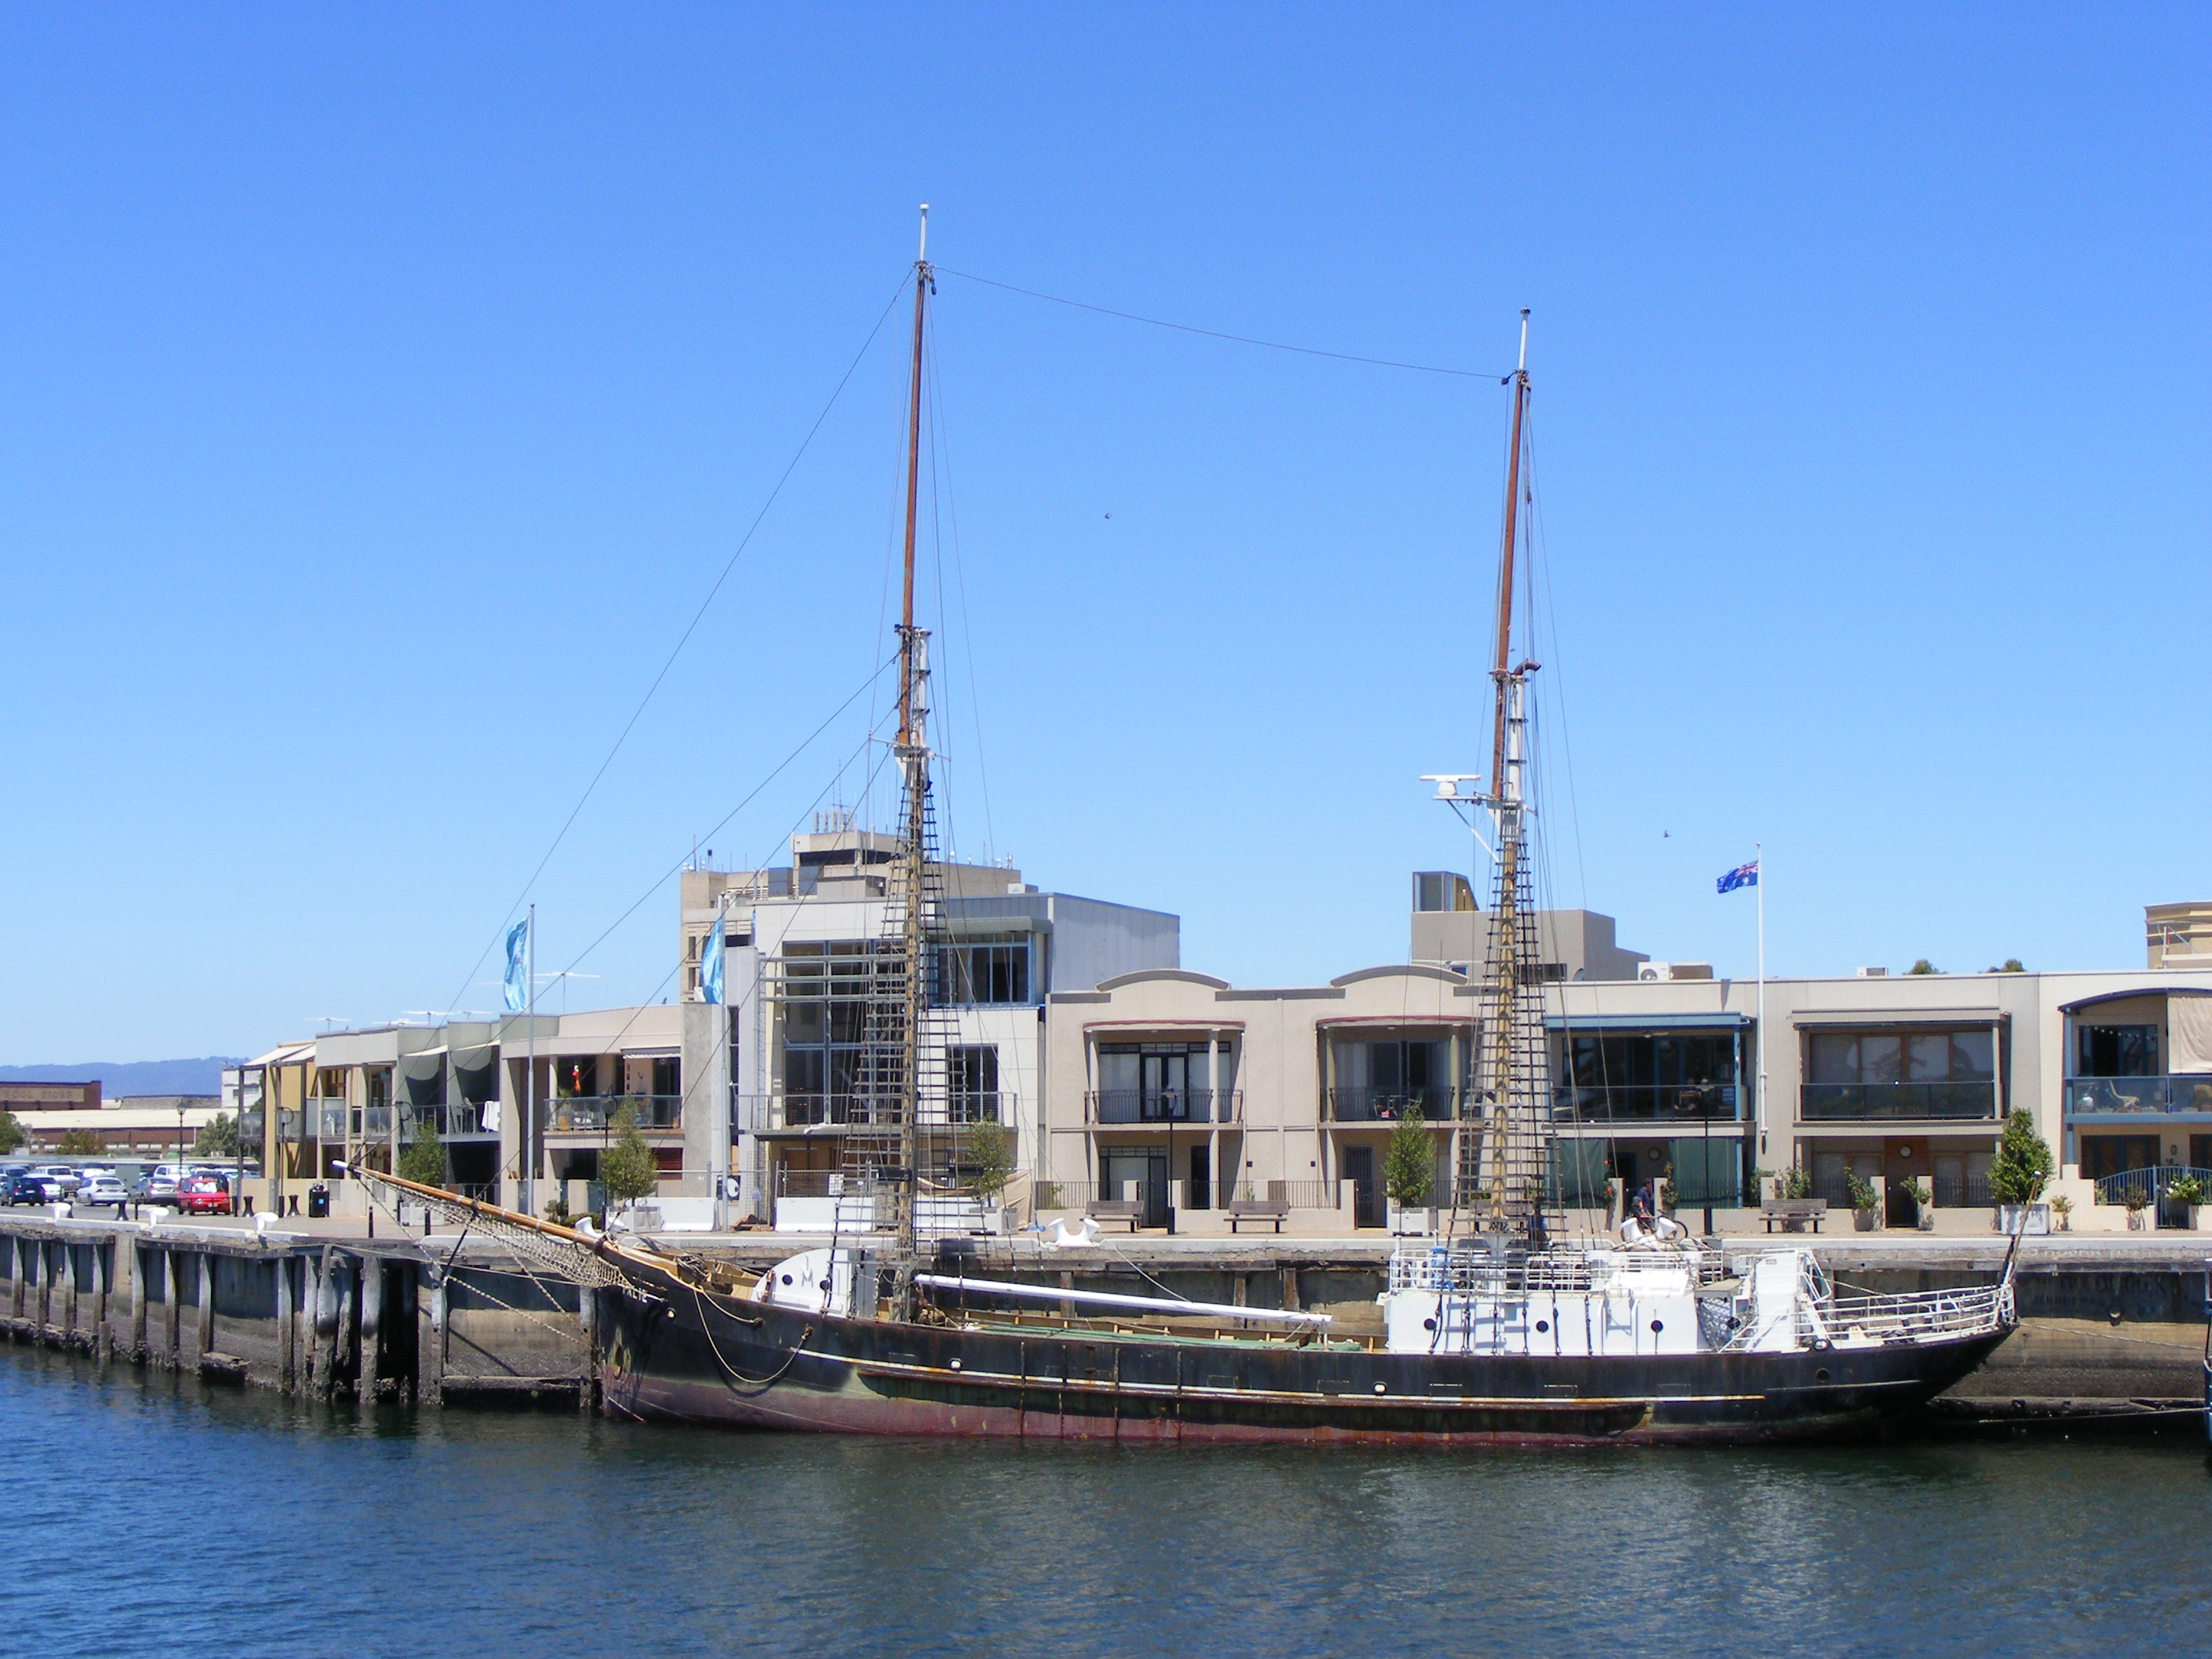 port adelaide - photo #11